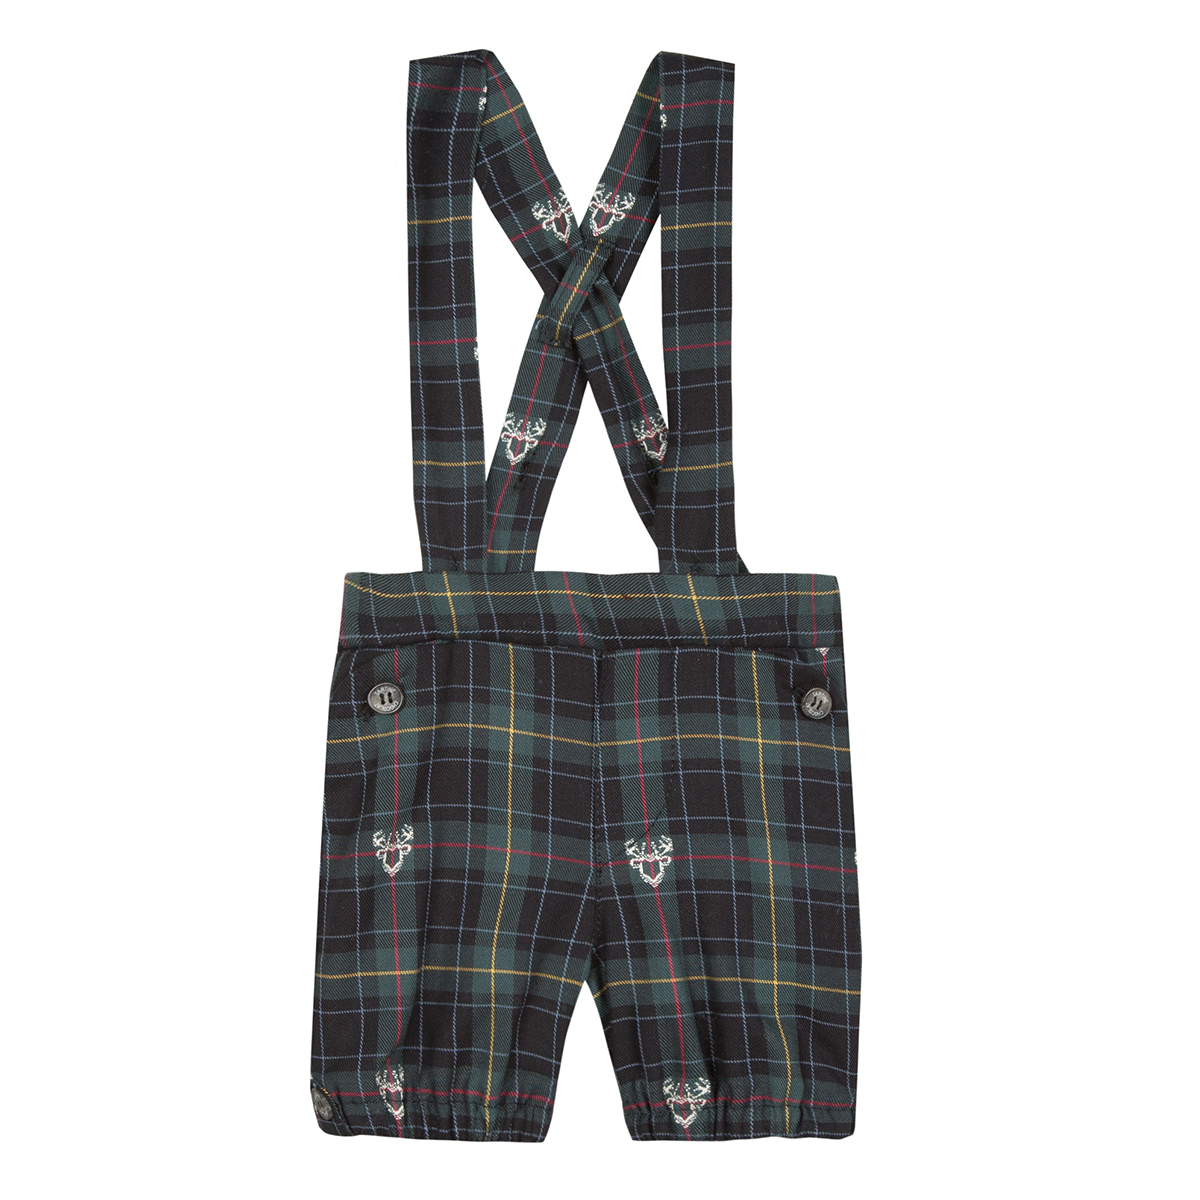 Tartine et Chocolate Plaid de Noel Shorts with suspenders